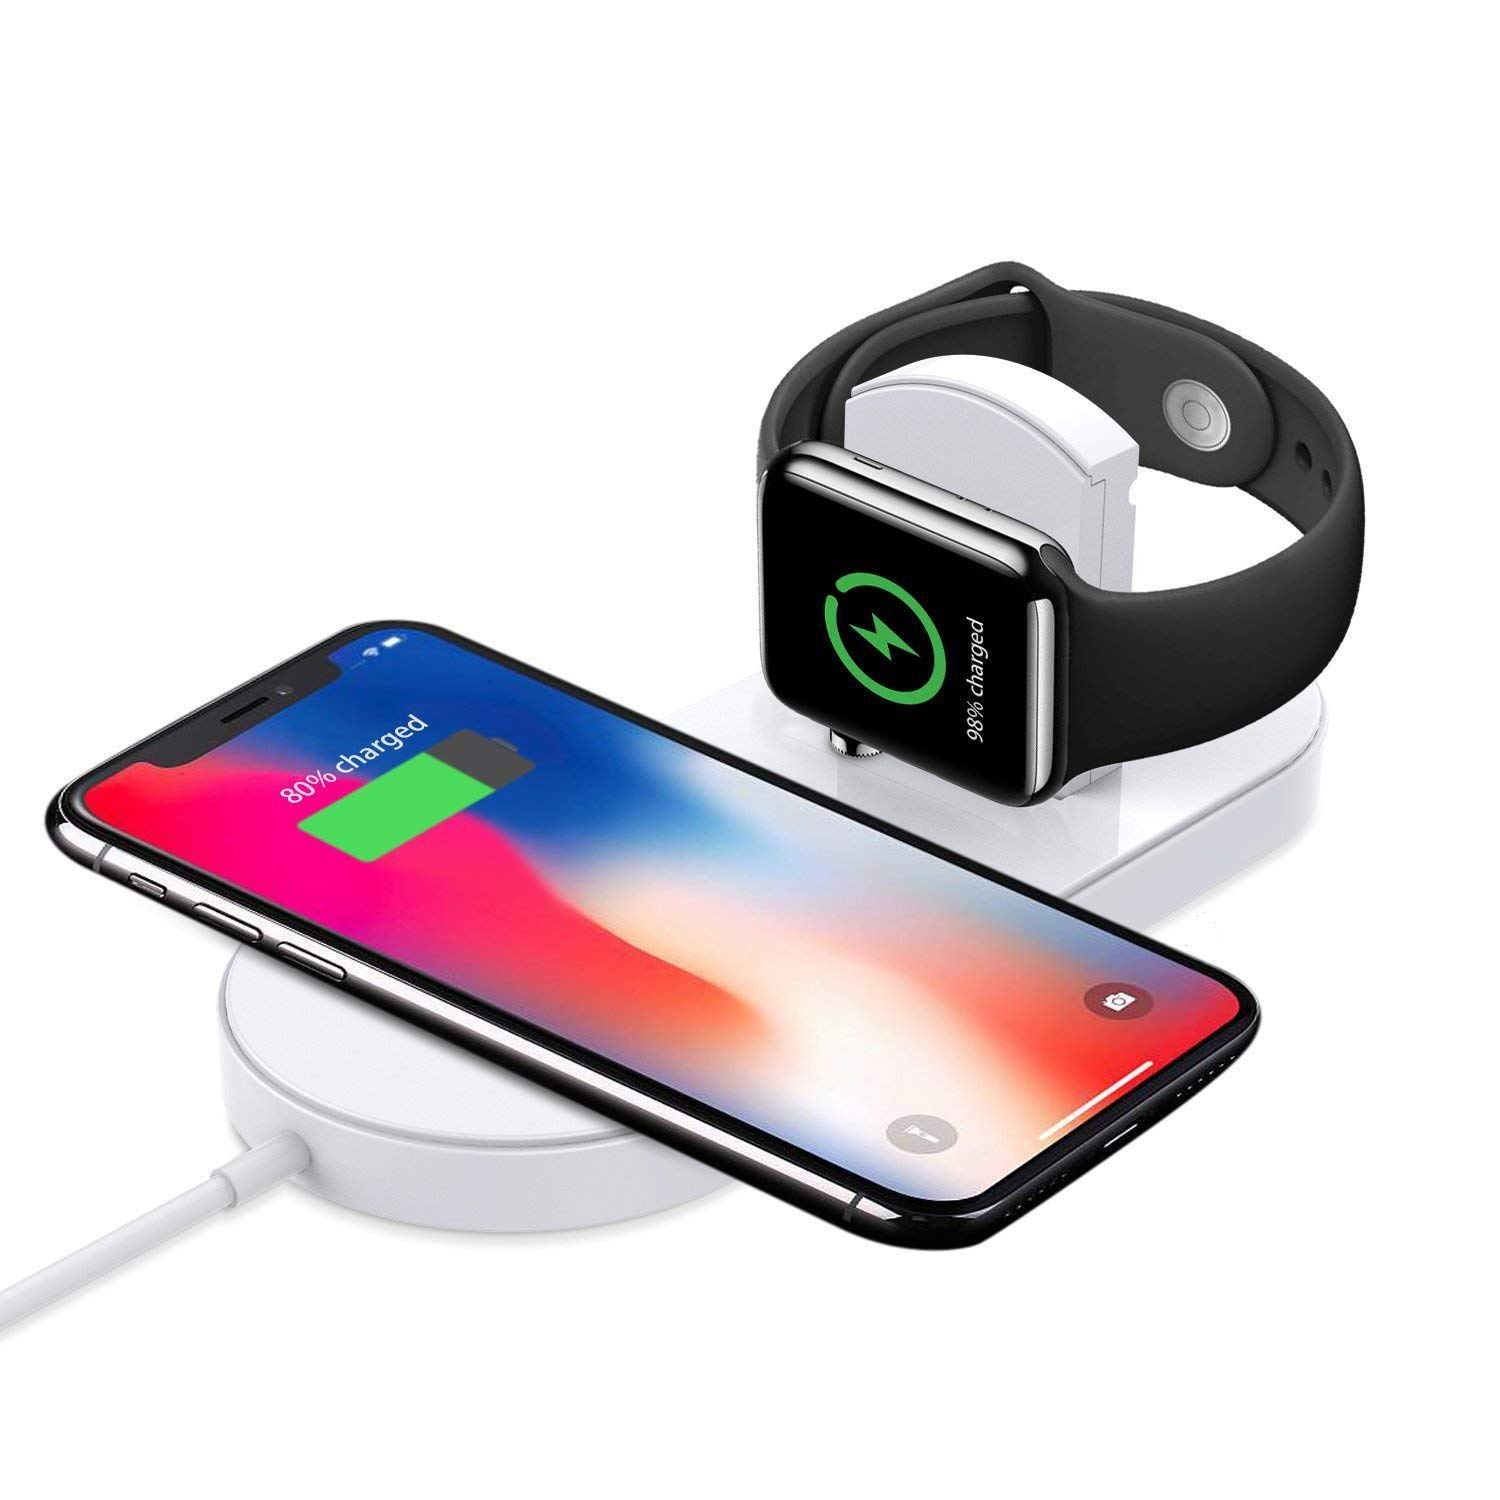 T TECLUSIVE Luxury 2 in 1 Wireless Charger Compatible for iPhone and iWatch    Smart Qi Wireless Charging Compatible for iPhone 11 Pro Max / 11 / XS Max  / X /